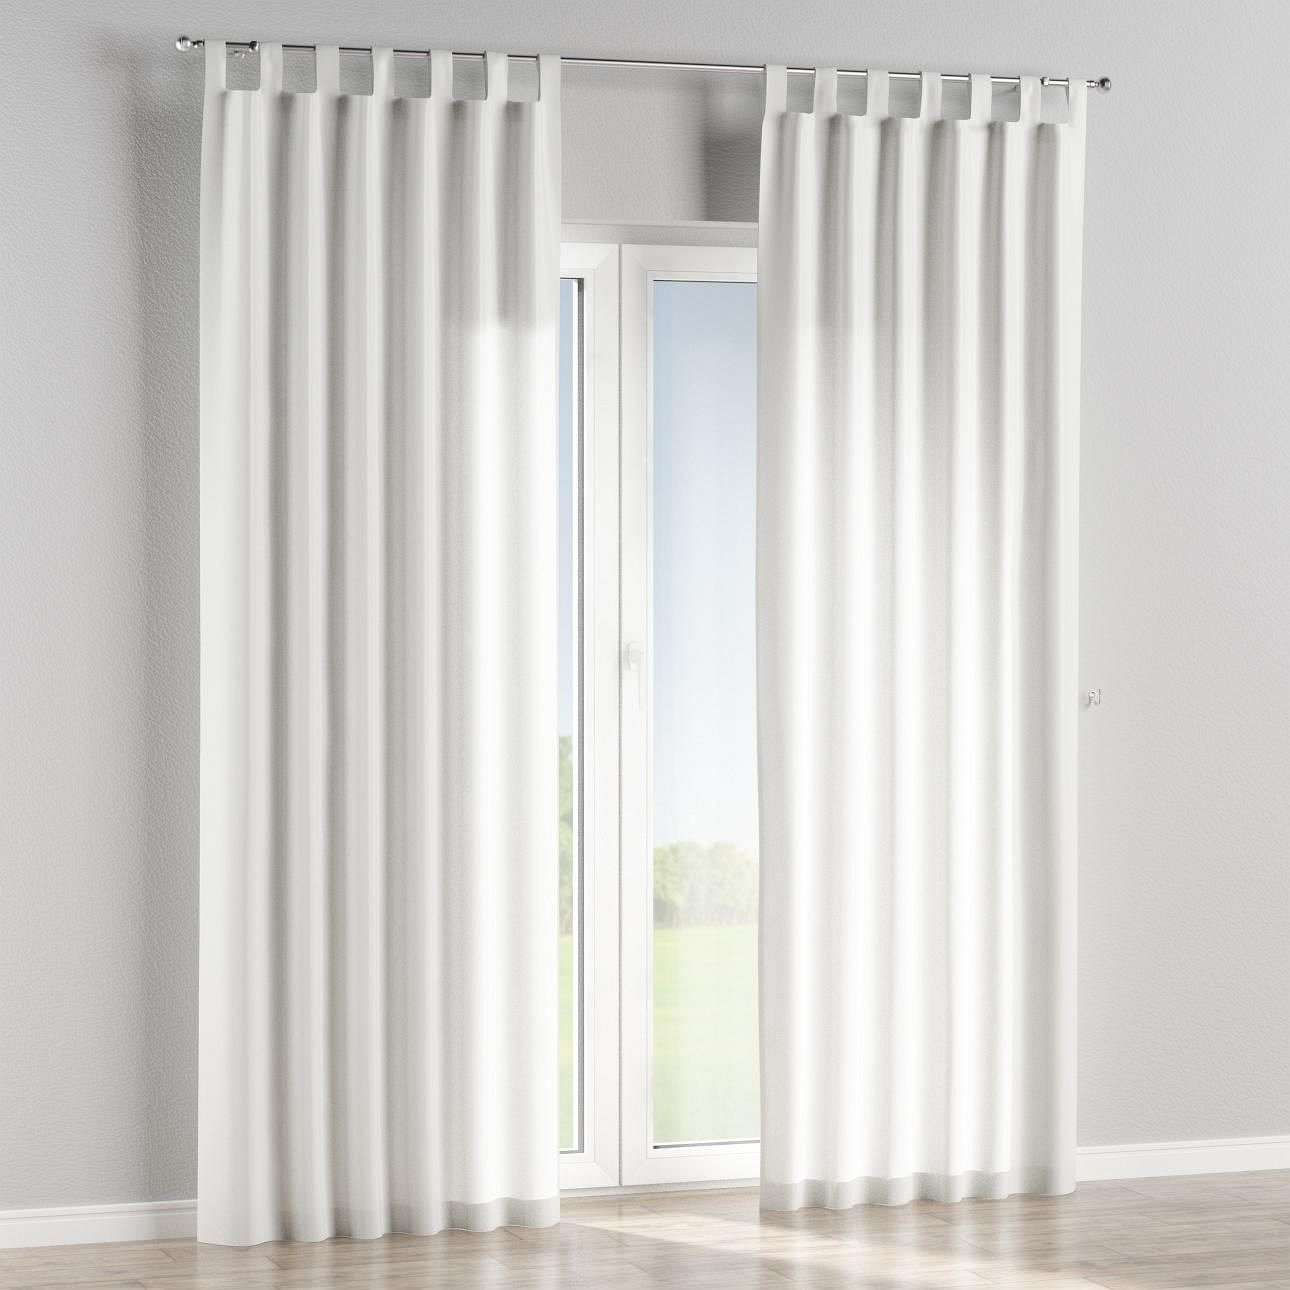 Tab top lined curtains in collection SALE, fabric: 136-75